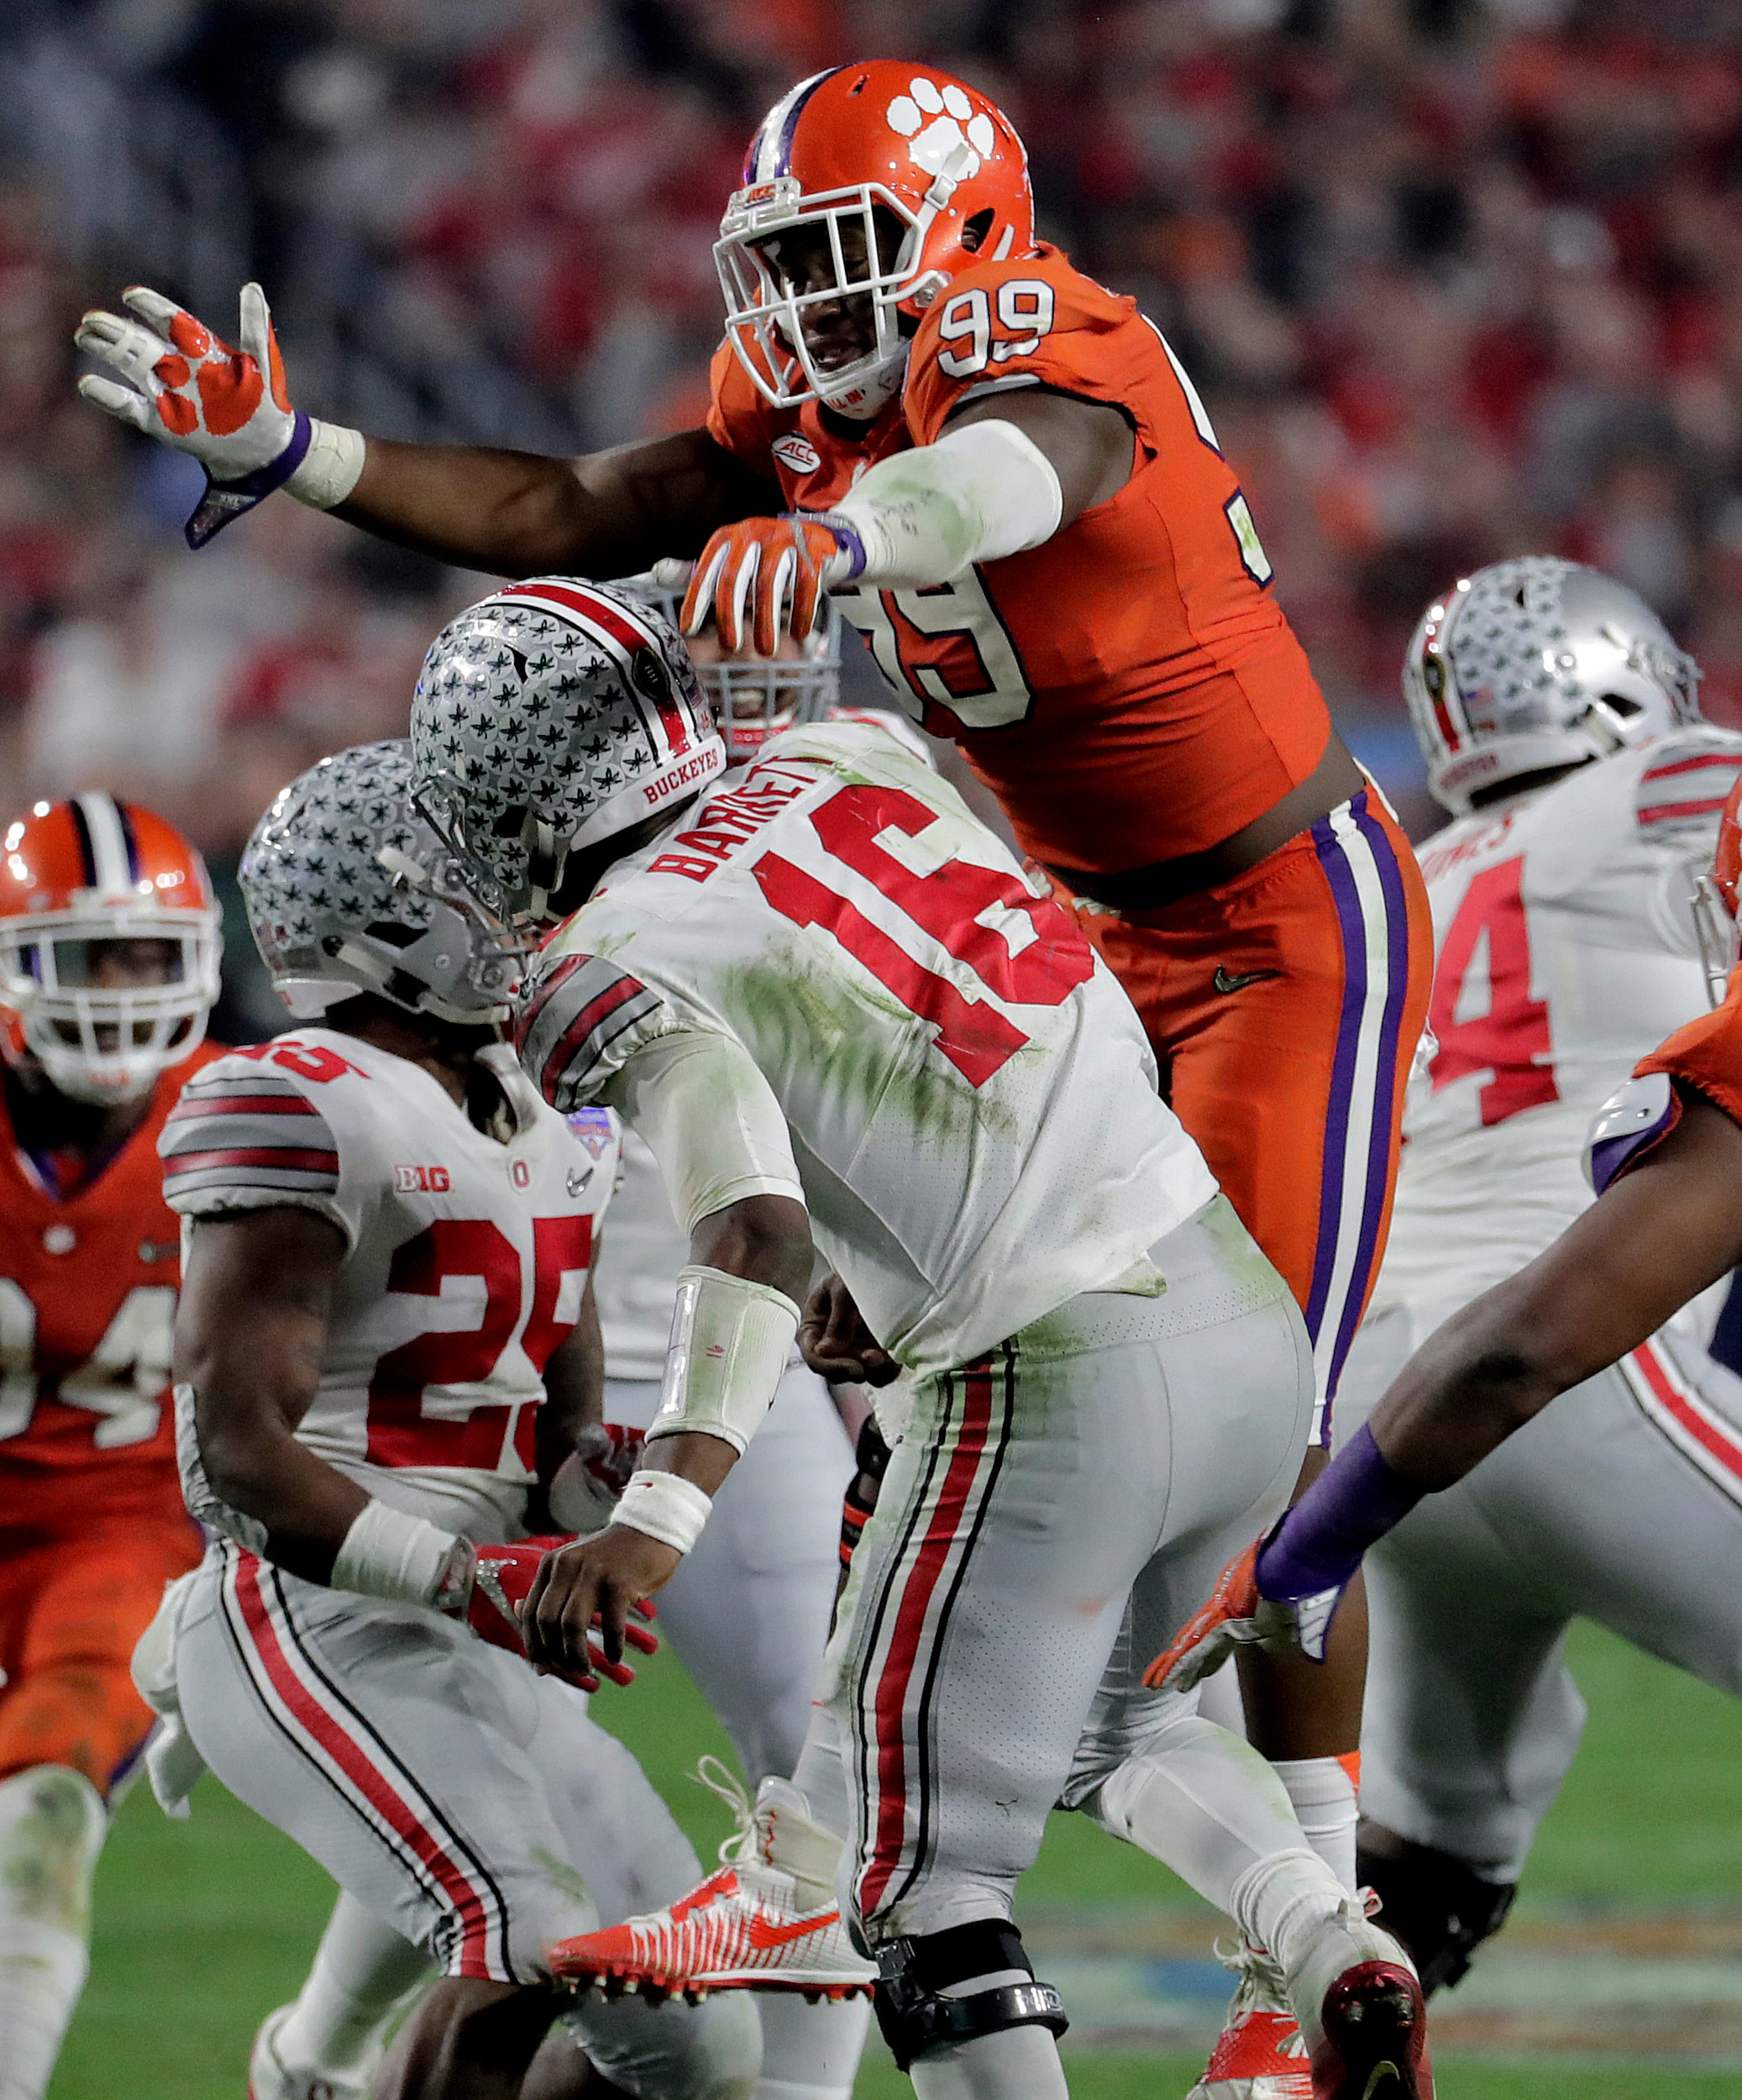 THE ASSOCIATED PRESSClemson defensive end Clelin Ferrell (99) was named to the first team of The Associated Press All-America football team released on Monday. Ferrell was one of six Tigers selected to the three teams